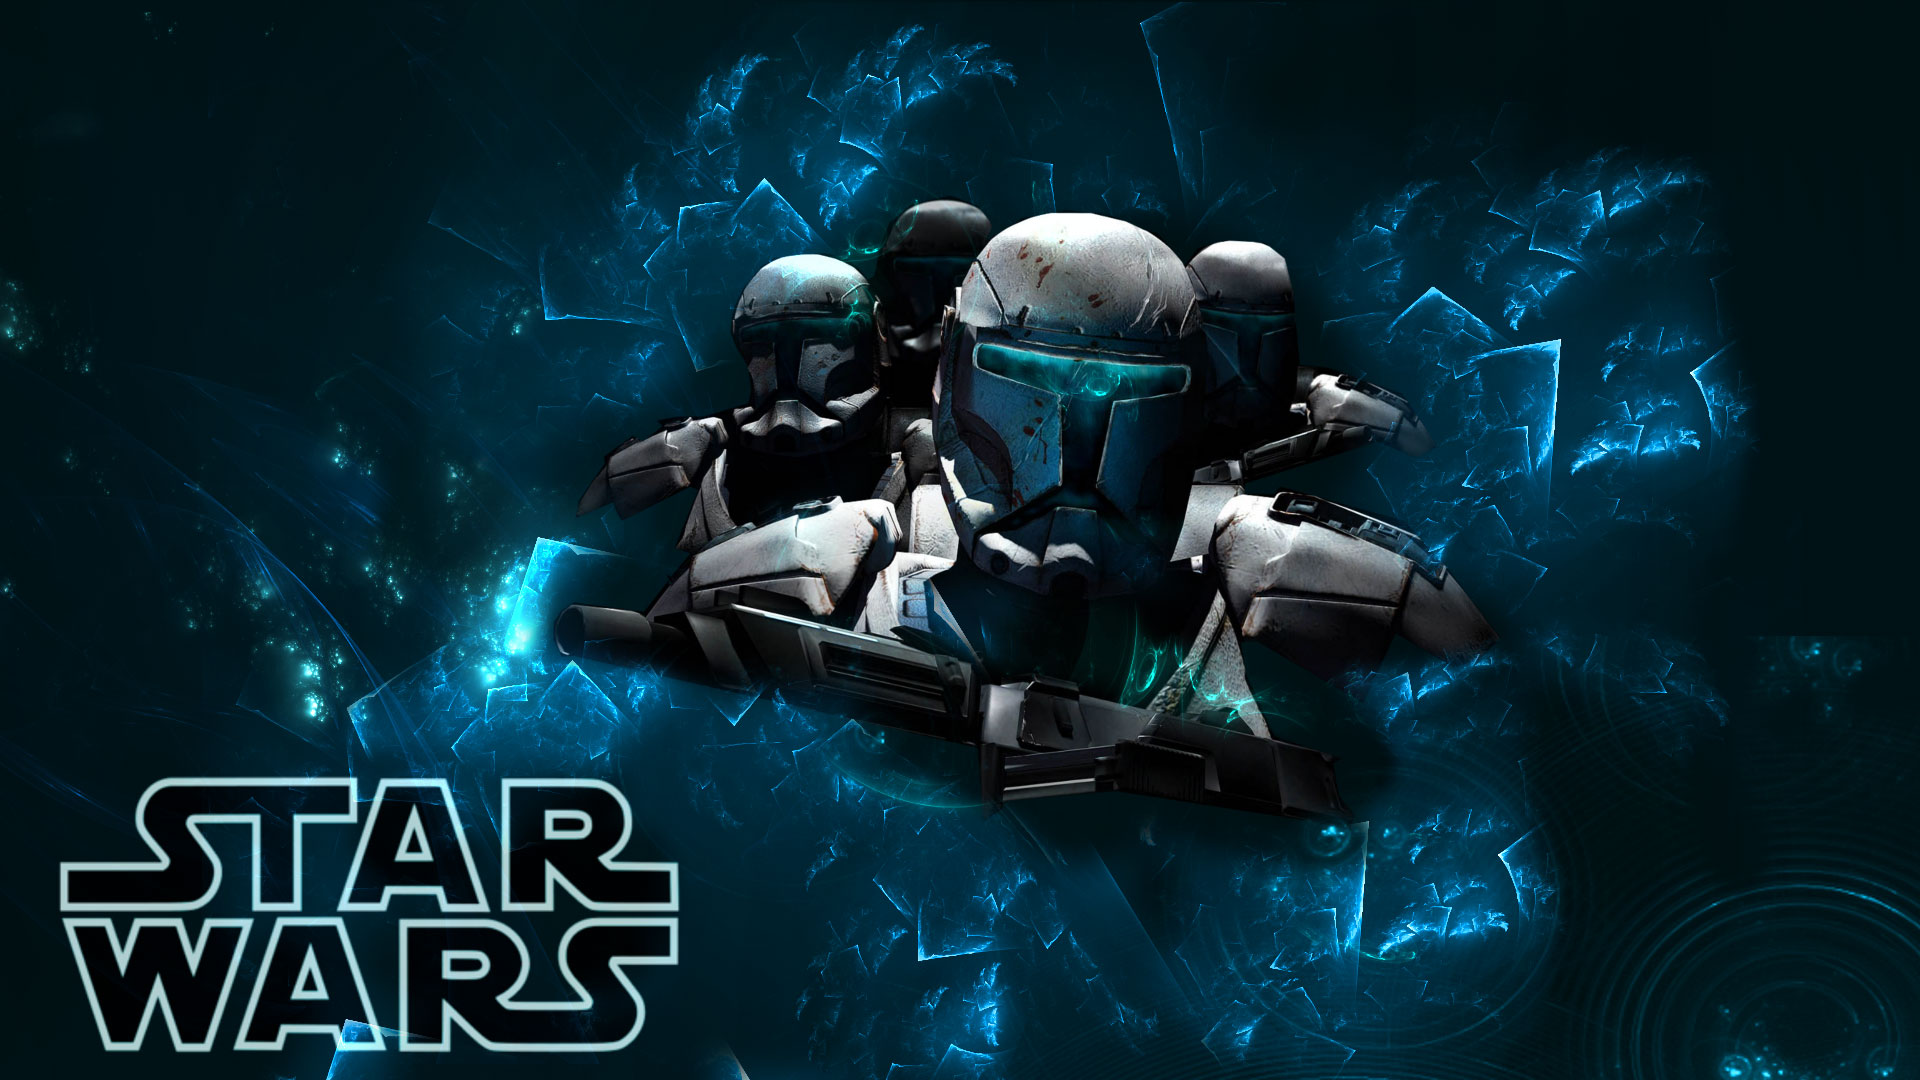 10 New Star Wars Clone Army Wallpaper Full Hd 1080p For Pc: Largest Collection Of Star Wars Wallpapers For Free Download